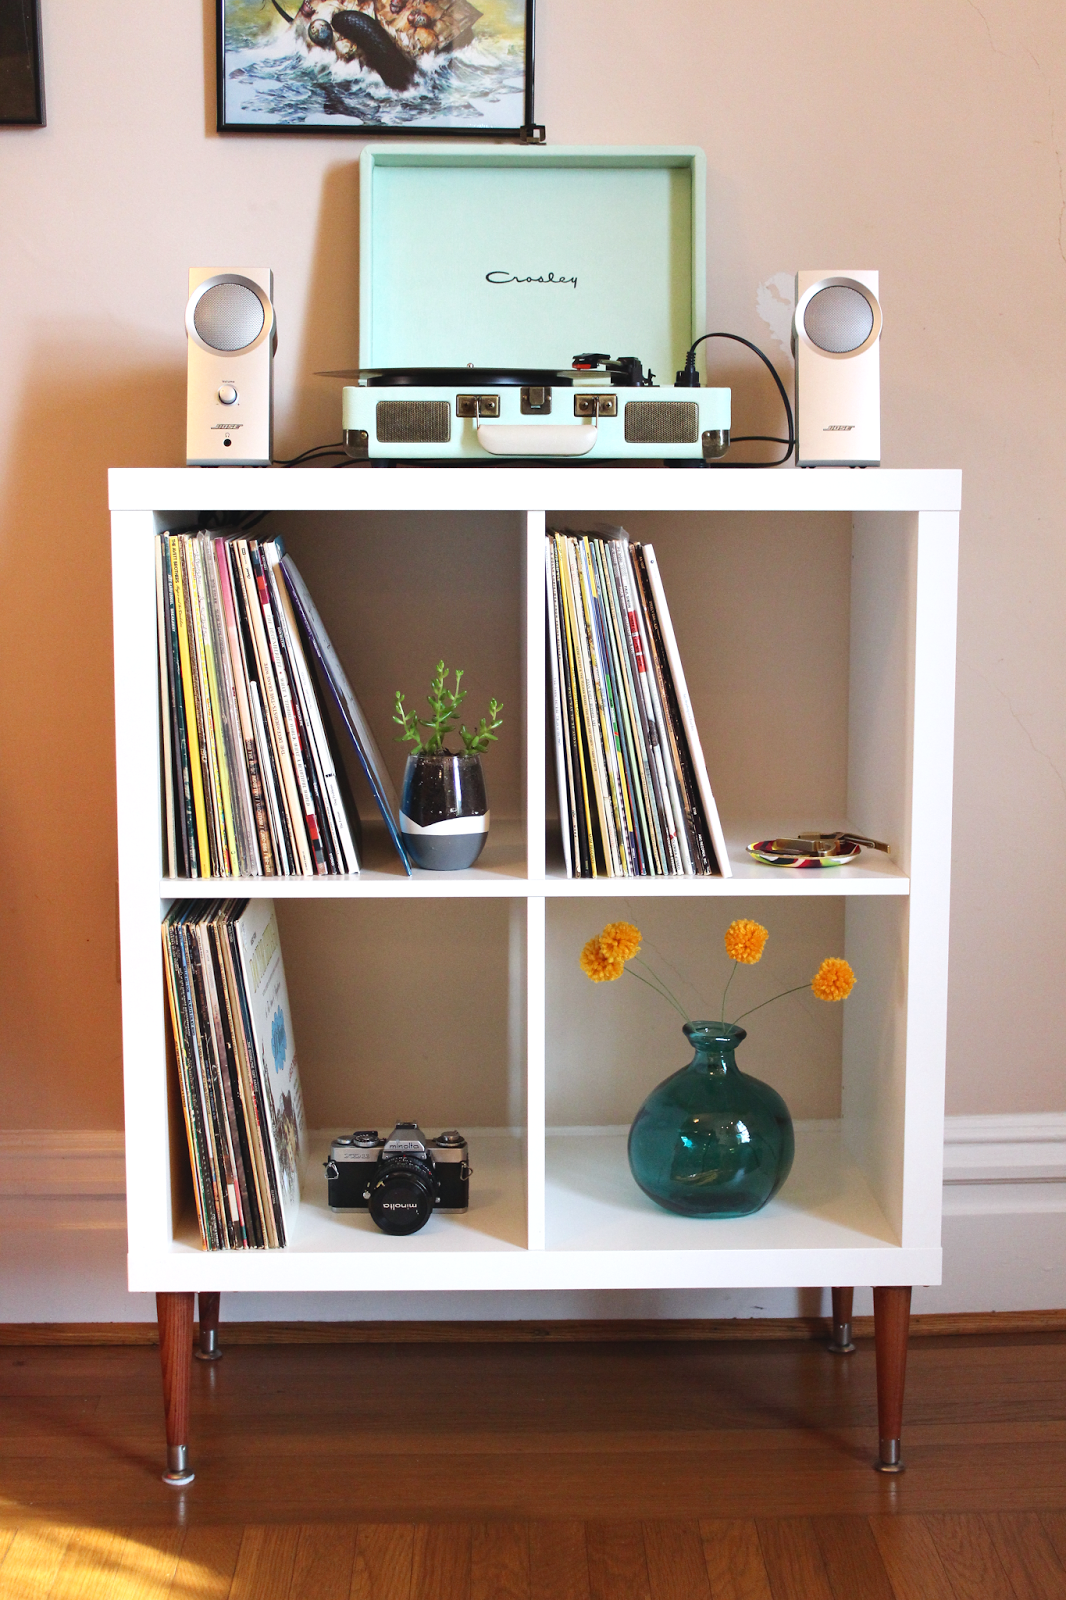 Range Vinyle Ikea Vinyl Record Shelf Furniture Ideas Diy Apartment Decor Vinyl